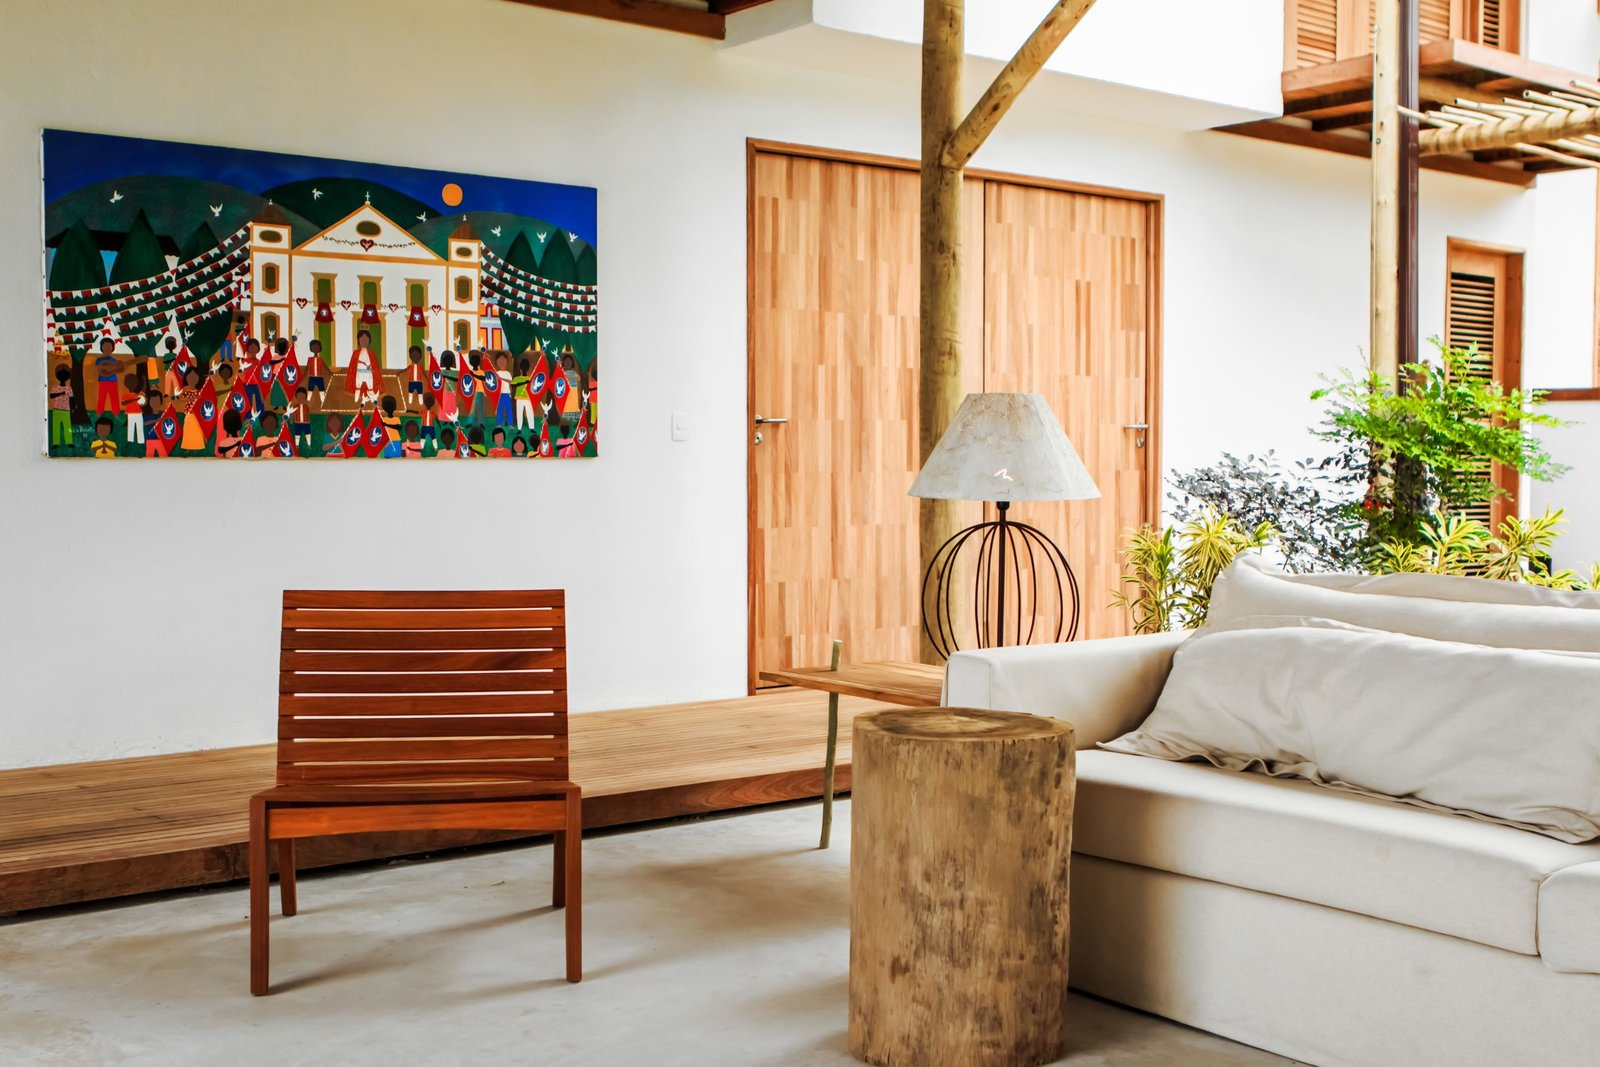 Living Room, Sofa, Chair, End Tables, Table Lighting, and Concrete Floor Casa Mar Paraty in Praia Grande, Party, Brazil  Casa Mar Paraty from 8 Brazilian Getaways to Book Now That U.S. Visitors Don't Need Visas